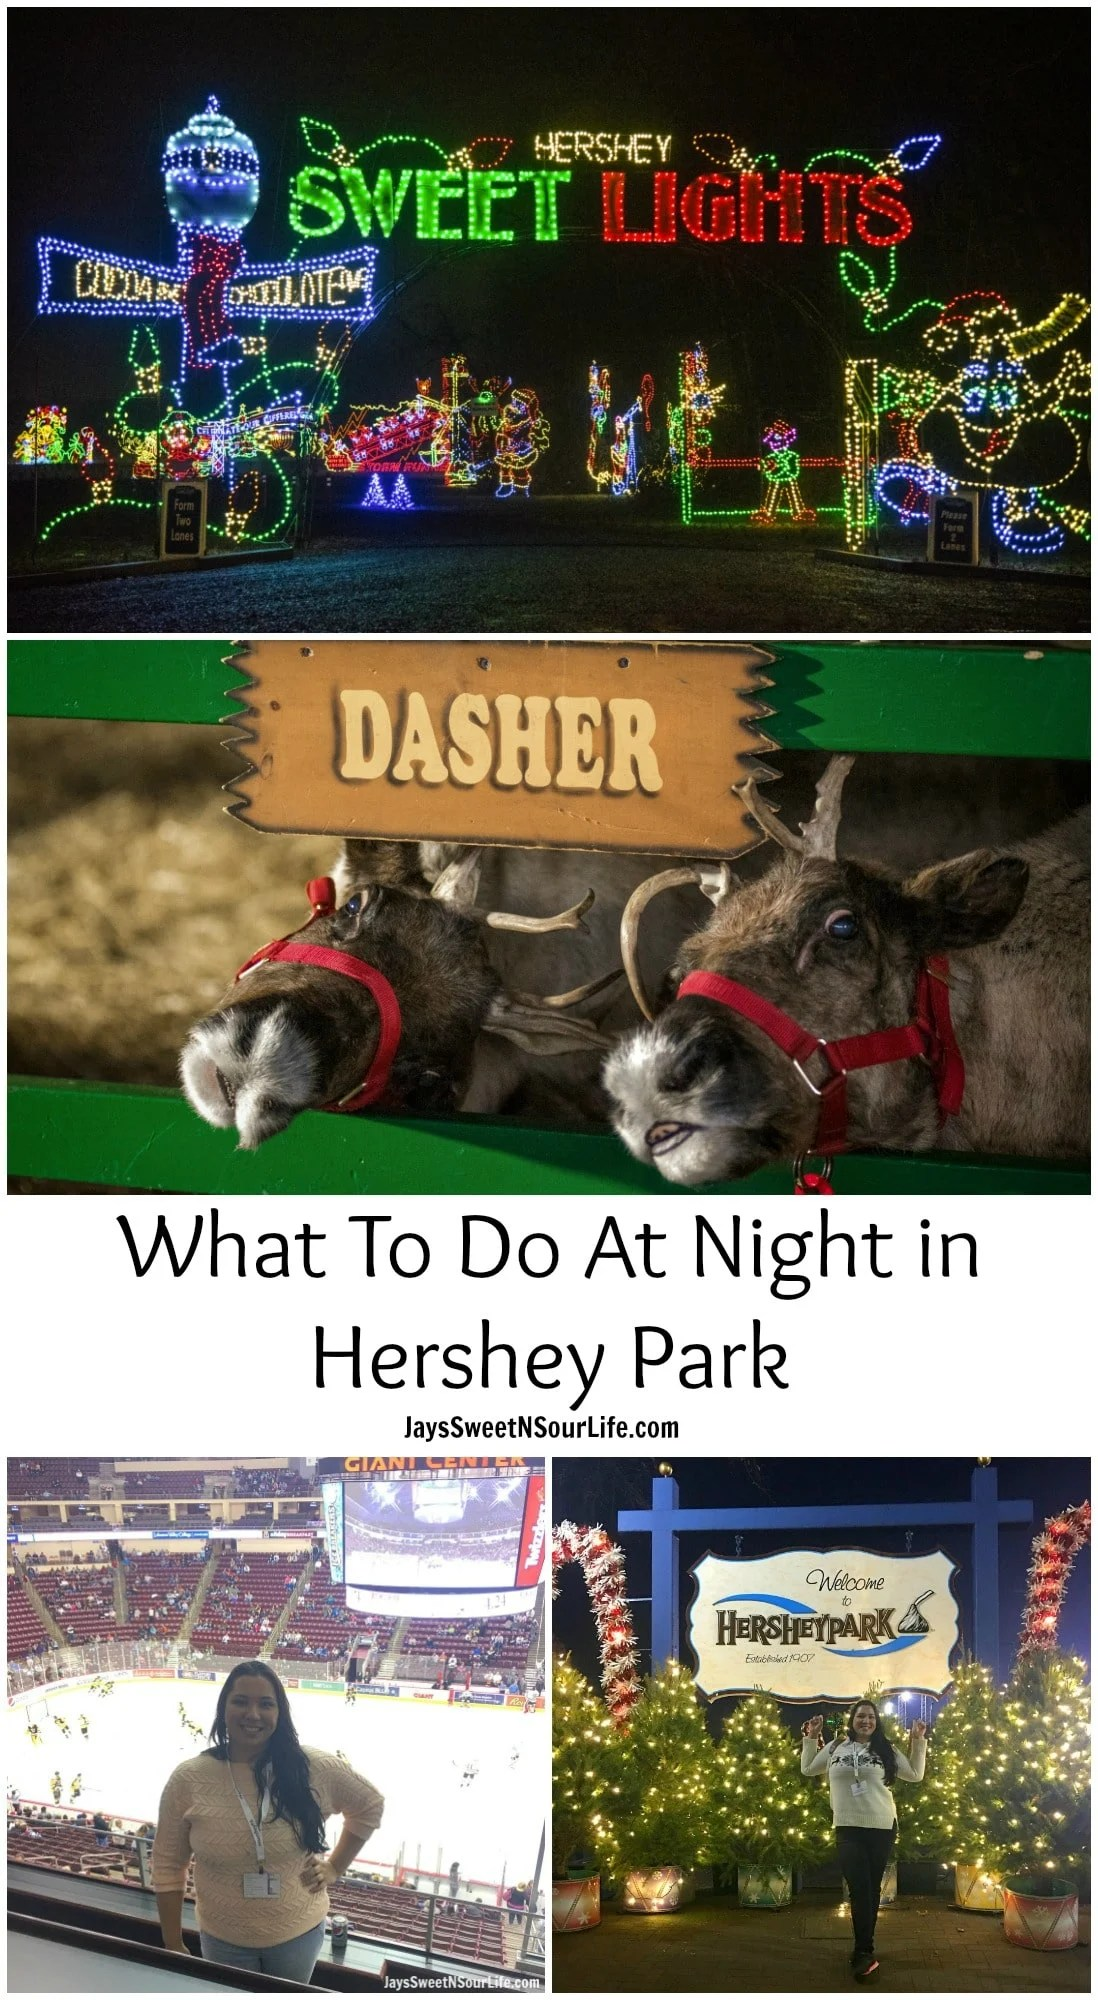 What To Do At Night in Hershey Park